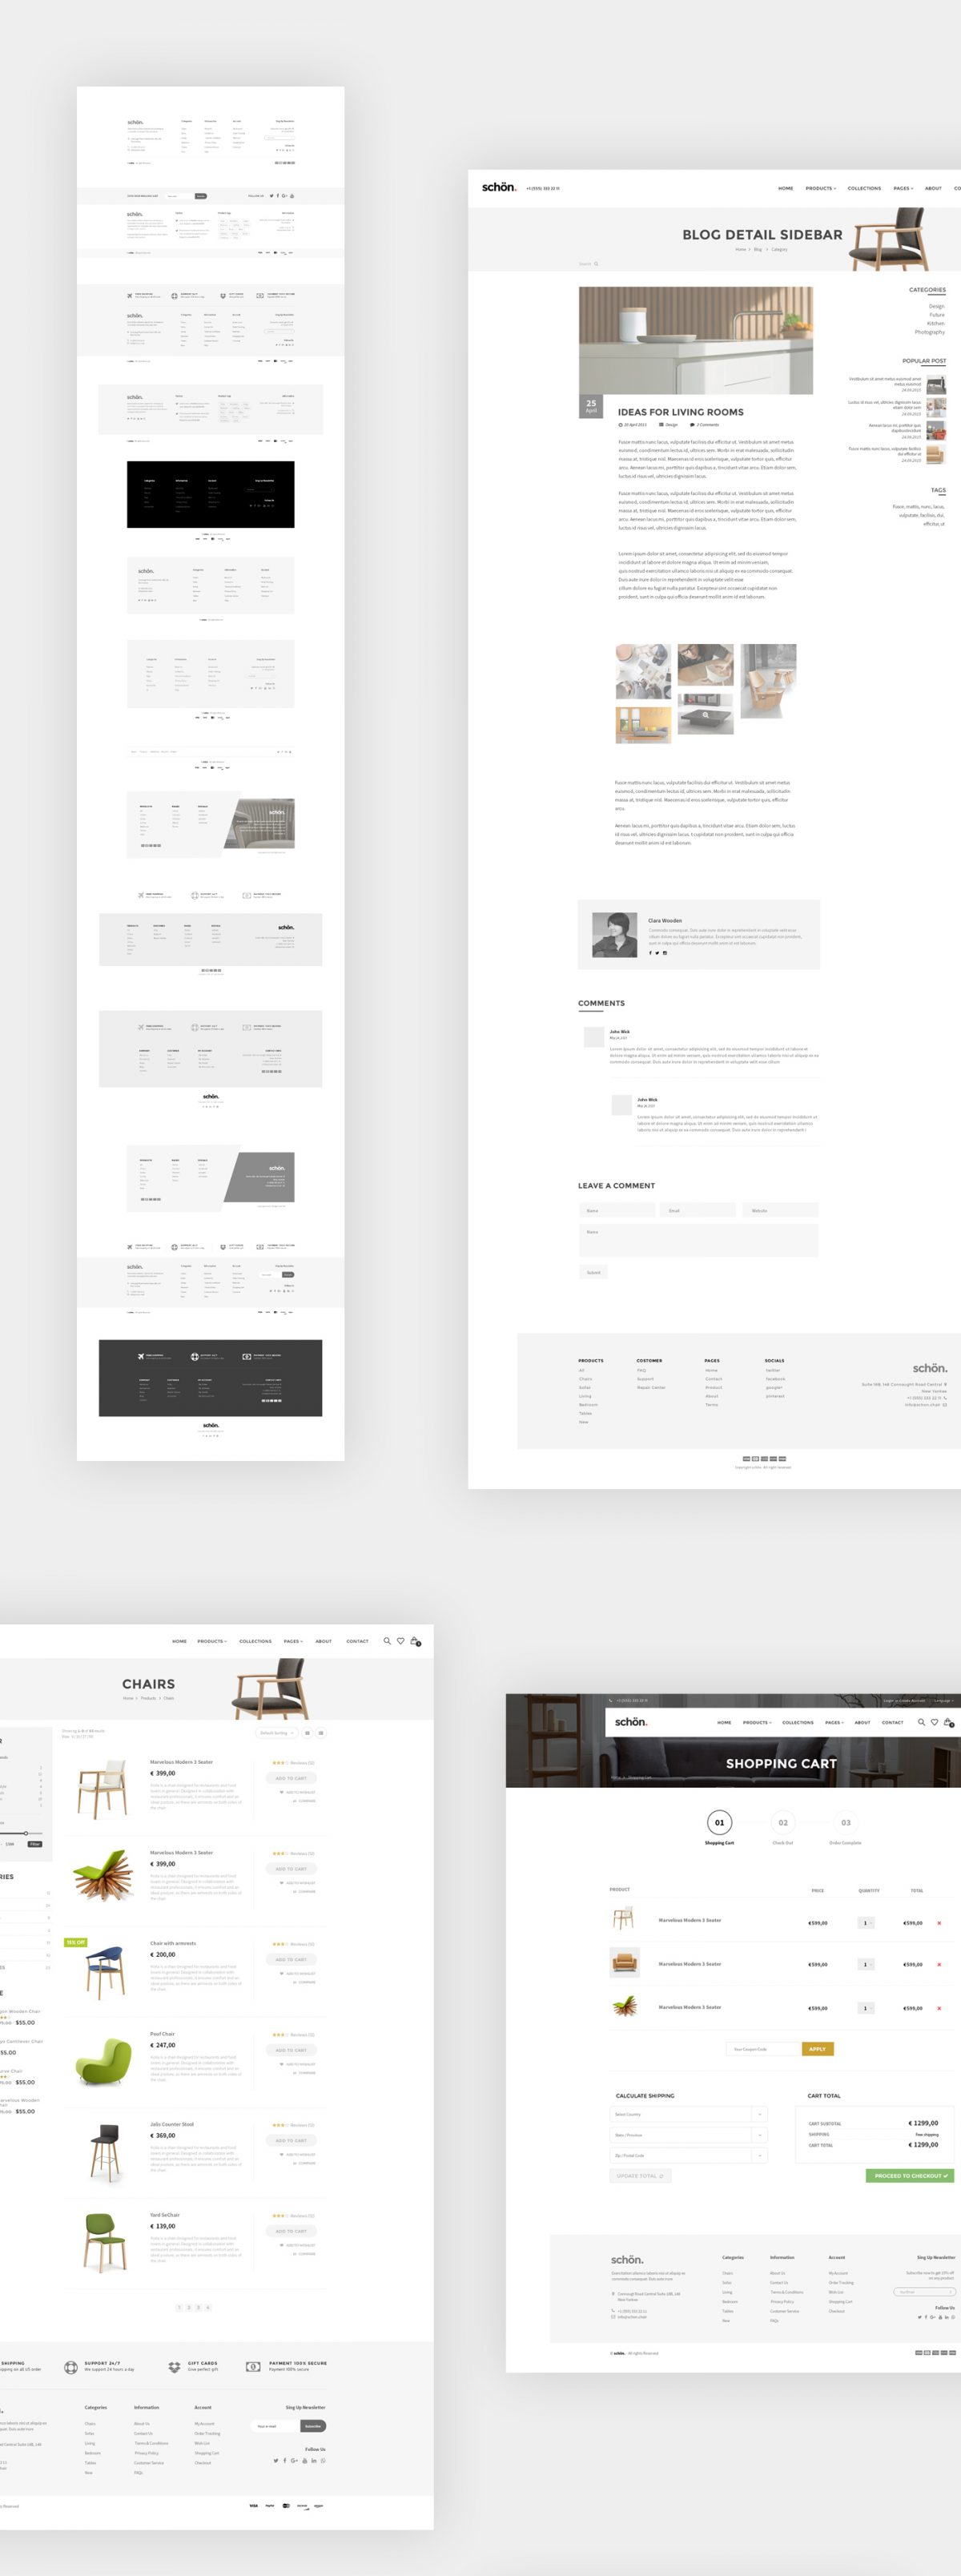 schon-ecommerce-psd-template-7